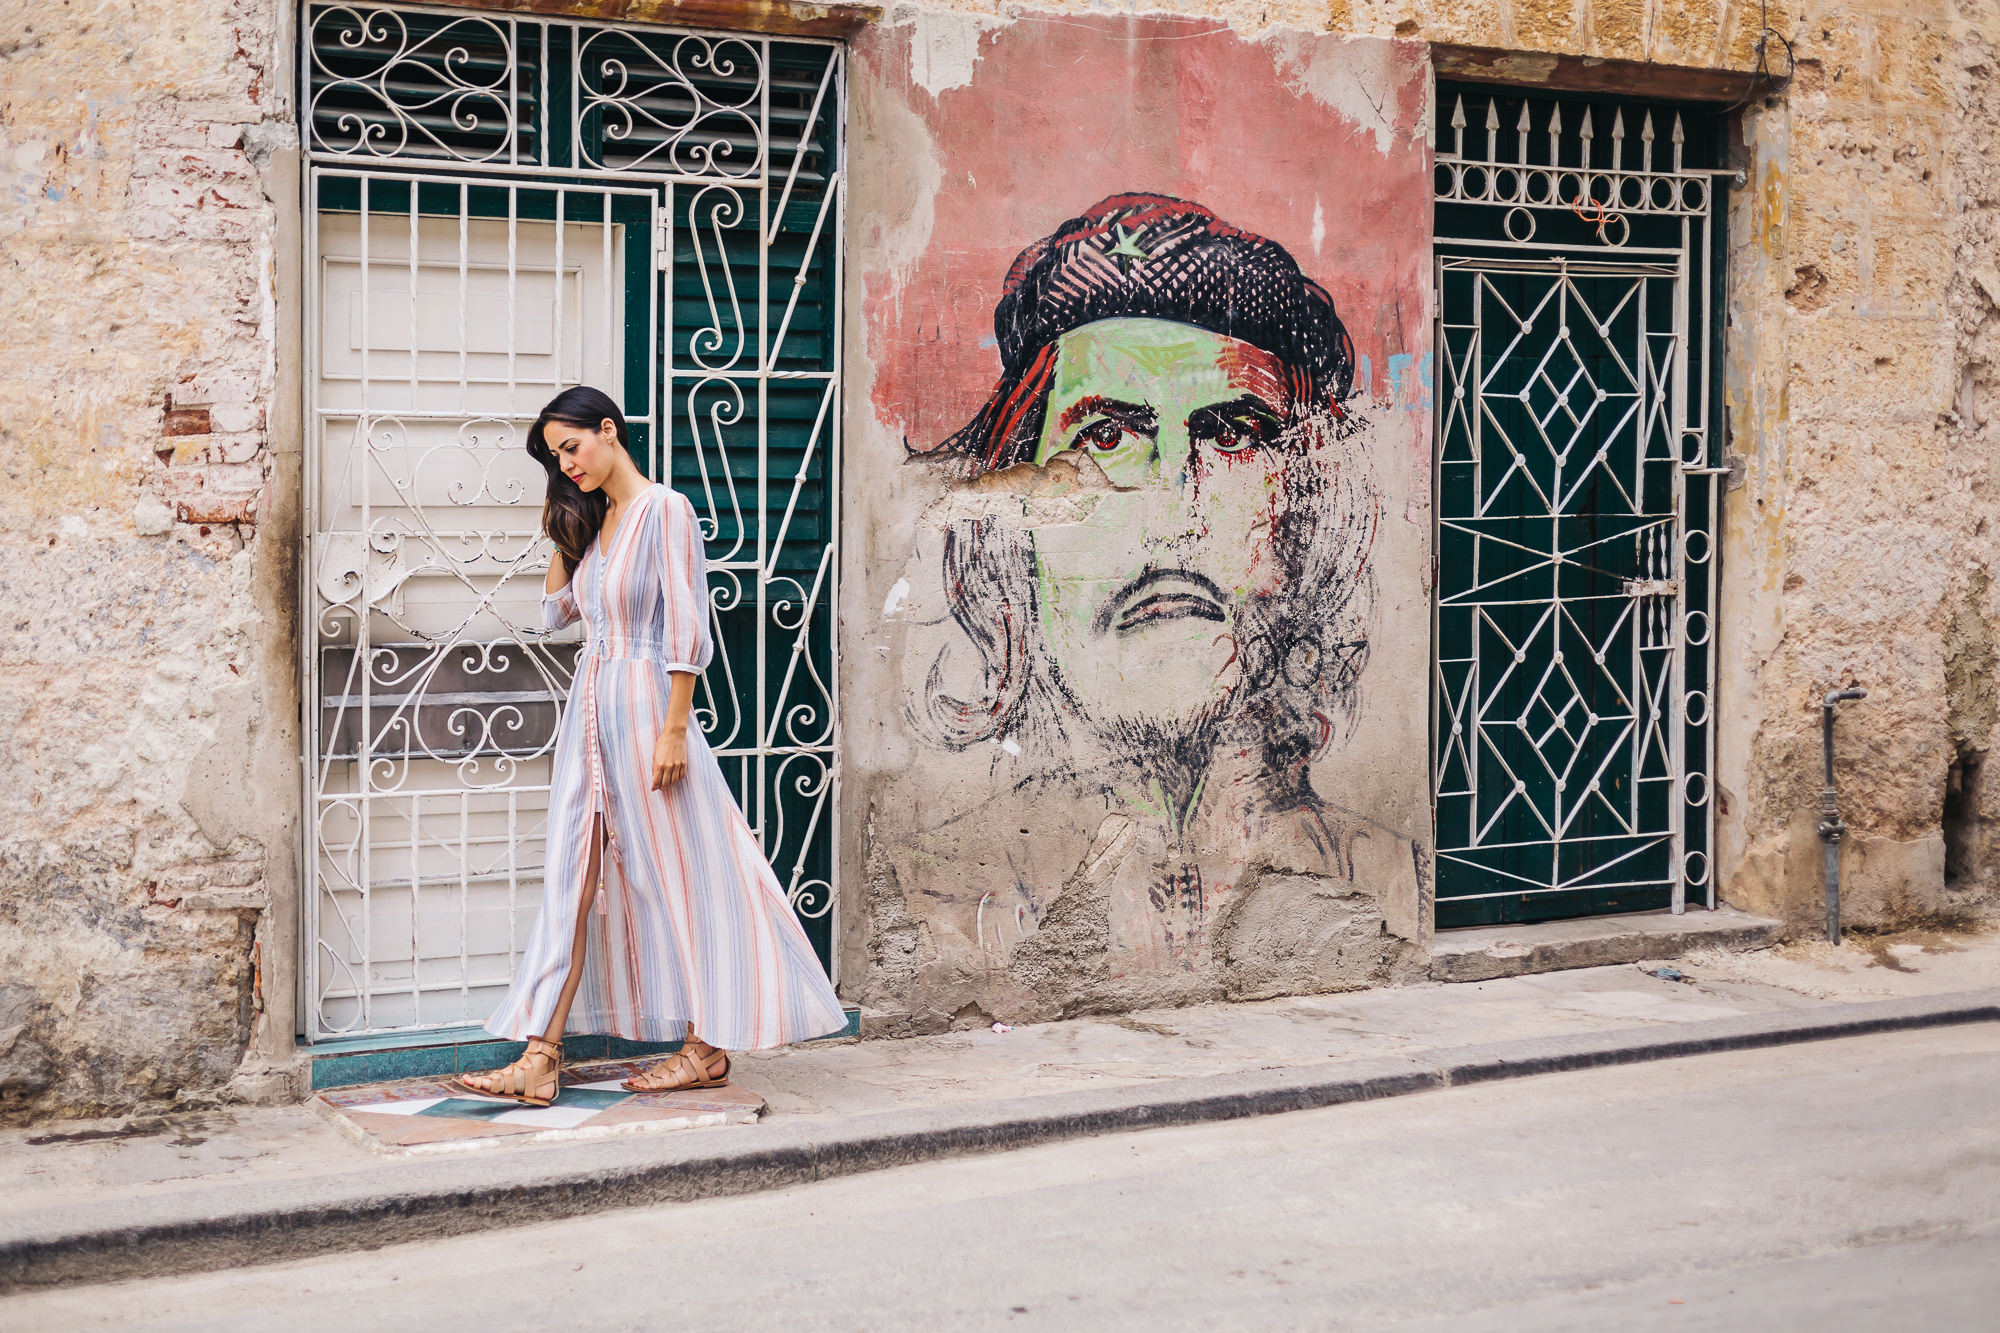 Drawings of Che are all over Havana